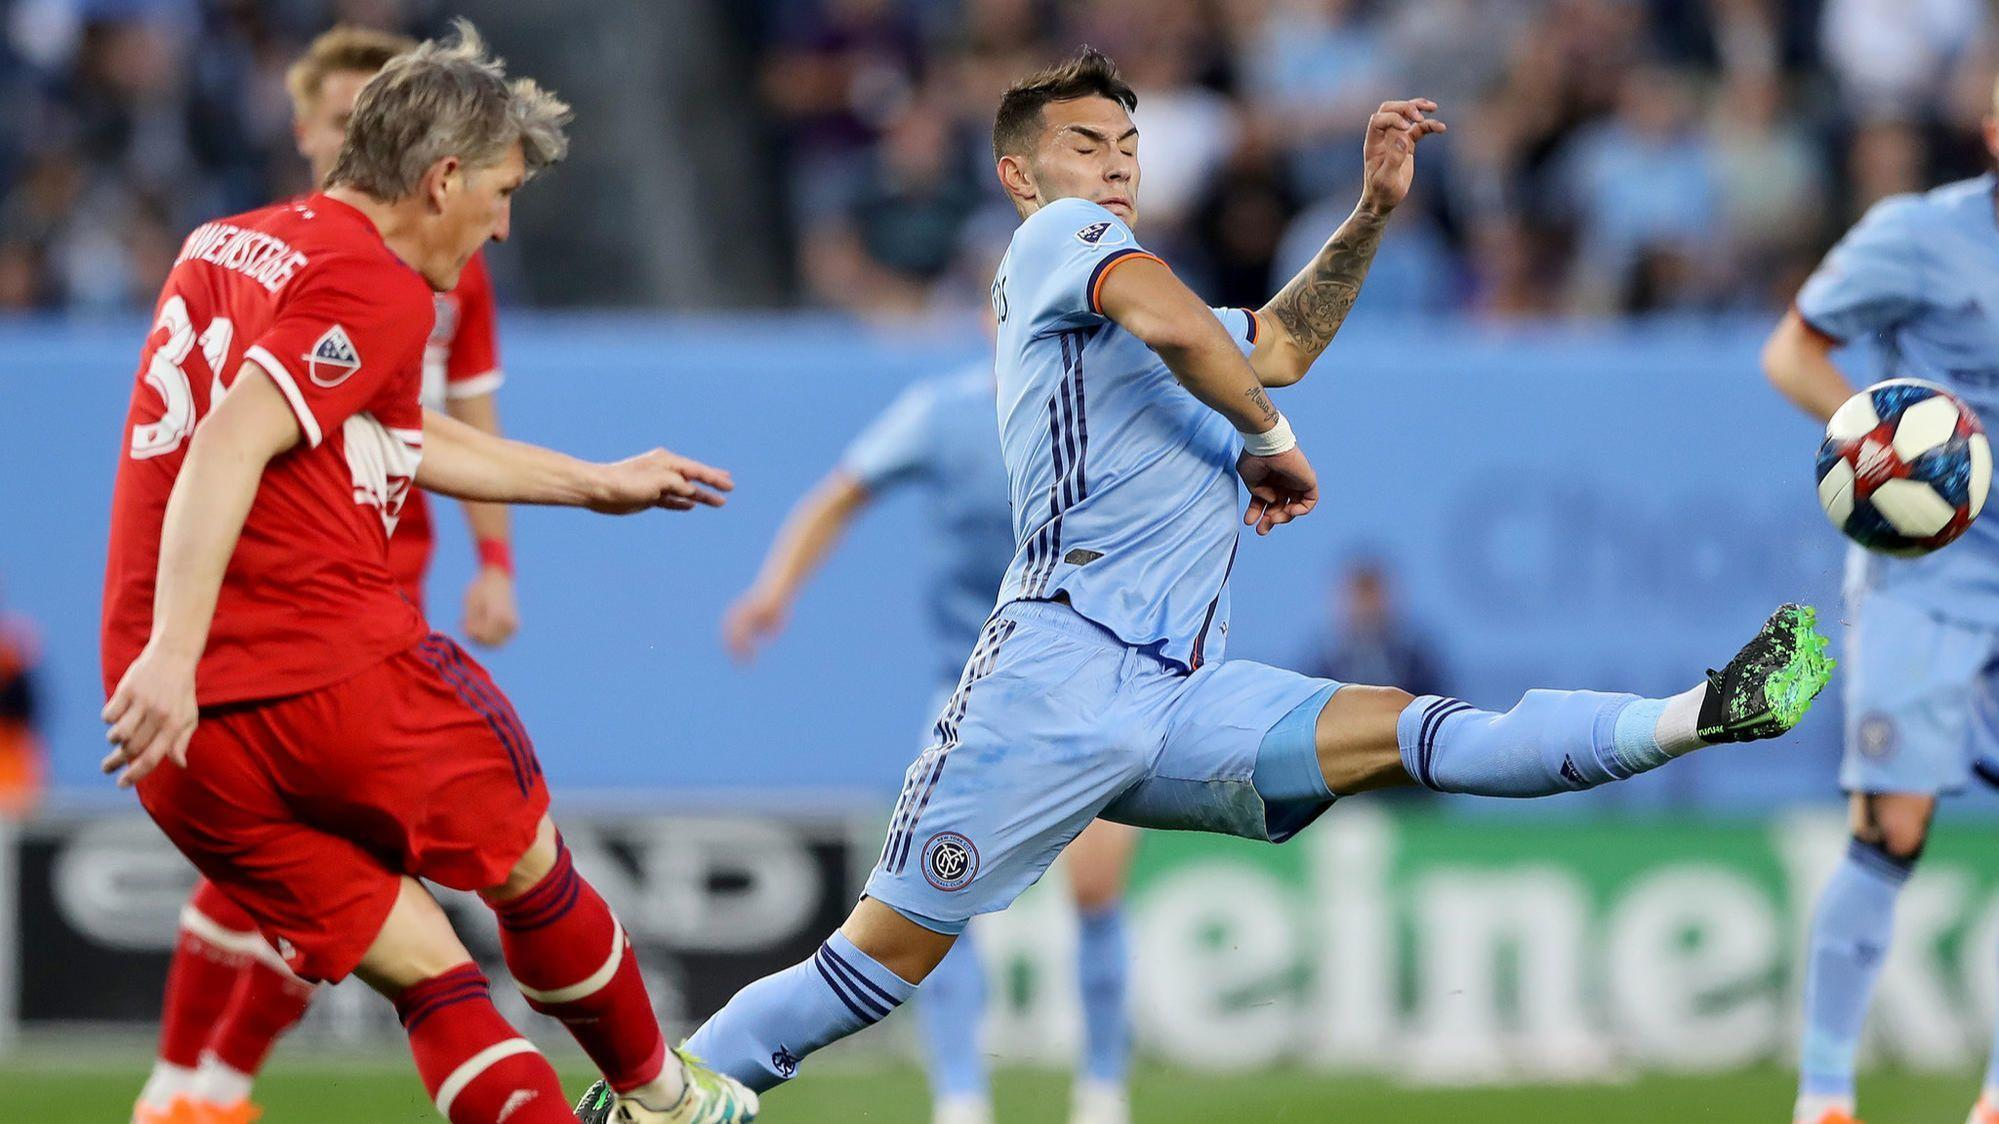 Fire's 4-game unbeaten streak ends with 1-0 road loss to NYC FC